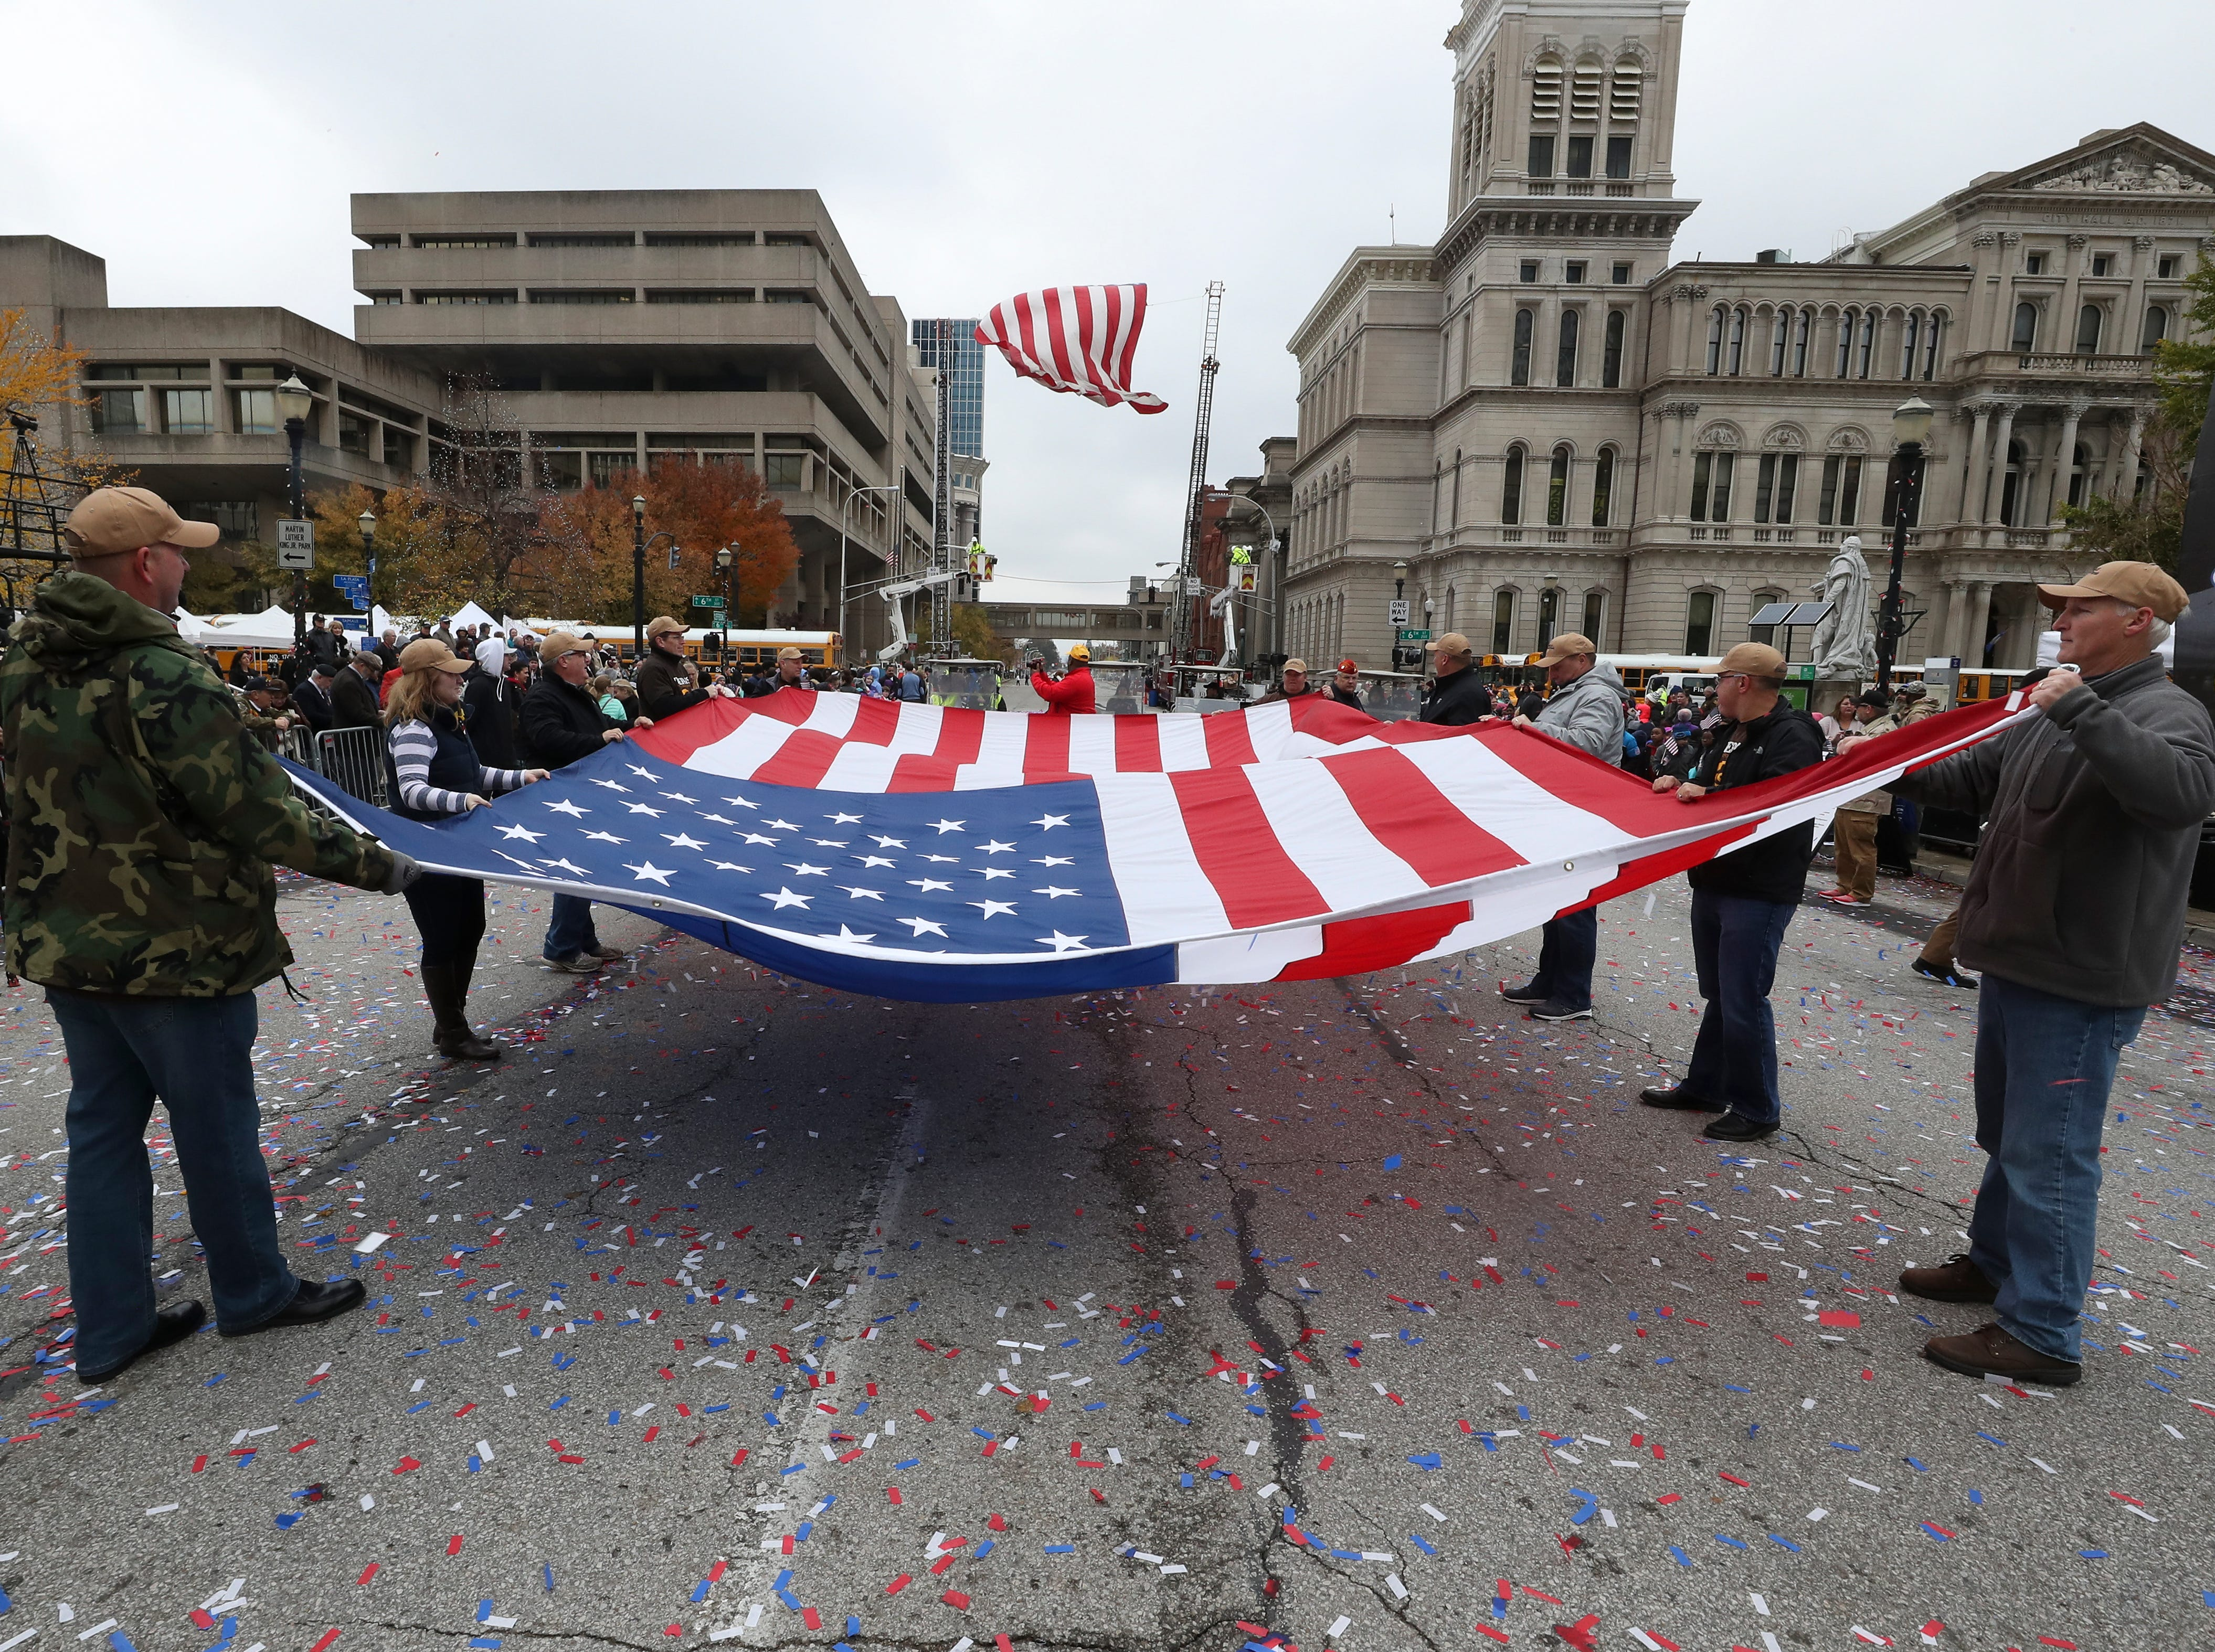 A U.S. flag was folded at the conclusion of the Veterans Day Parade on Jefferson Street.Nov. 9, 2018